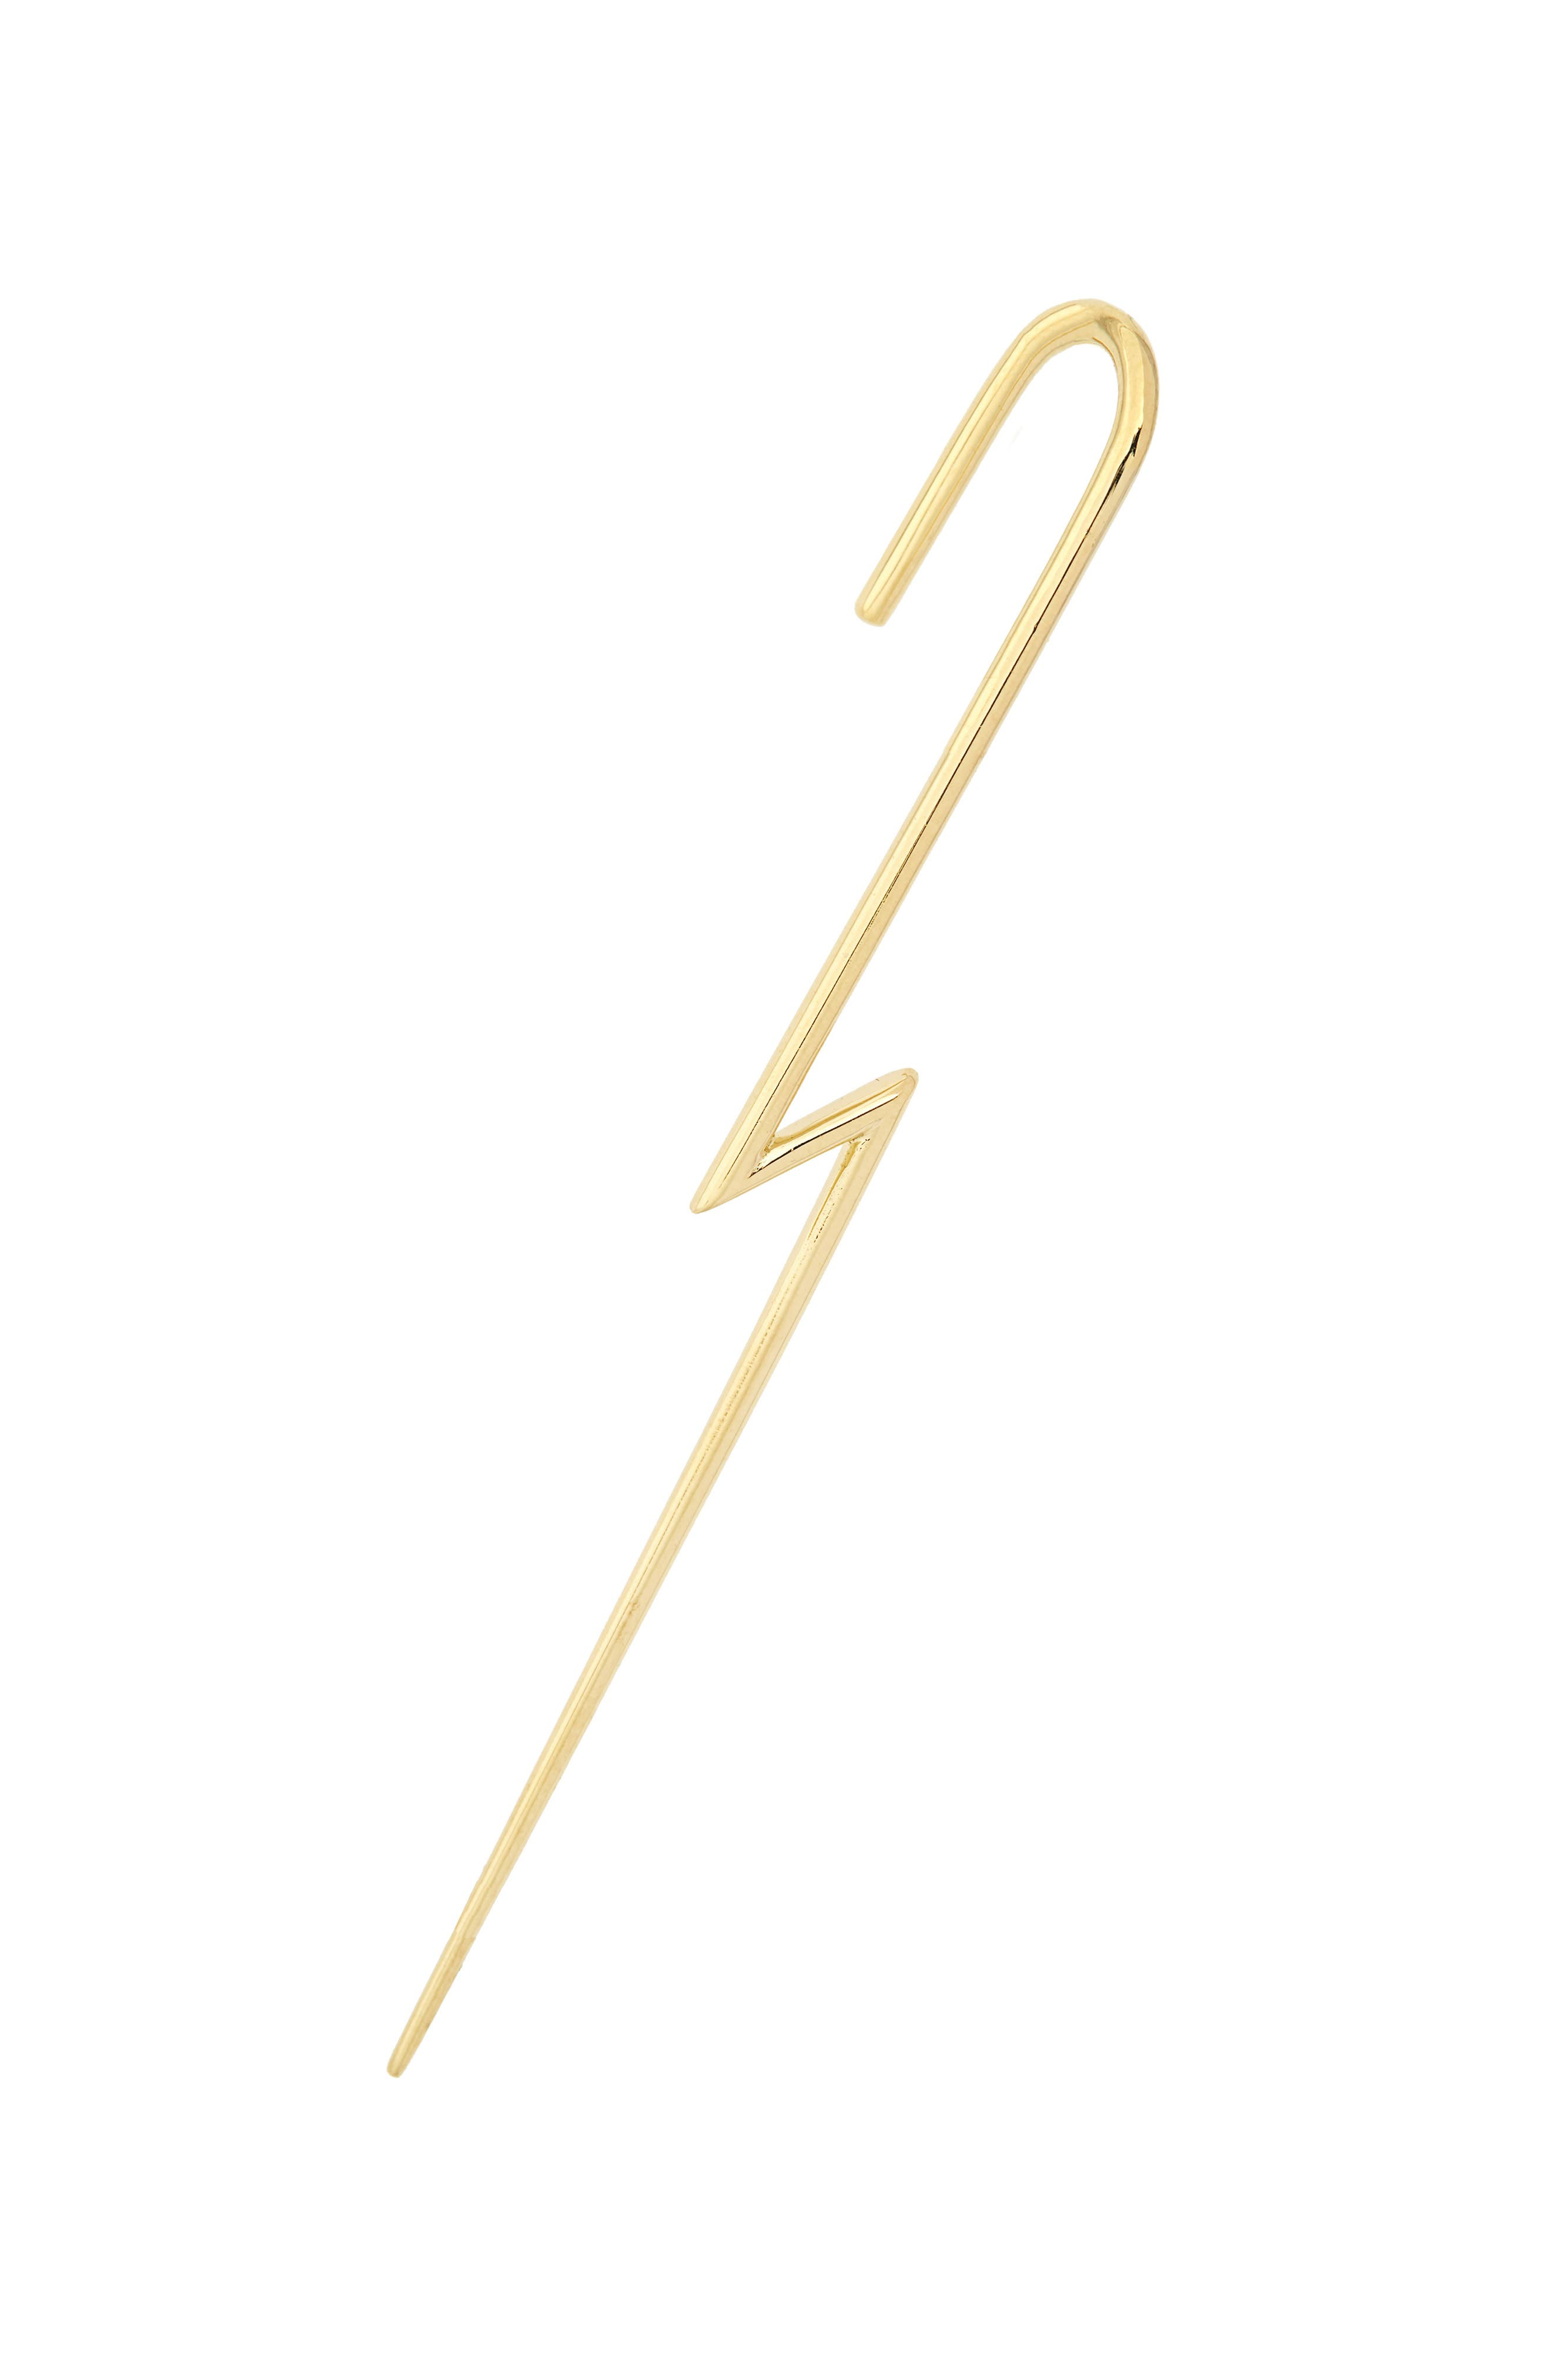 KAT KIM The Flash Ear Pin in Gold